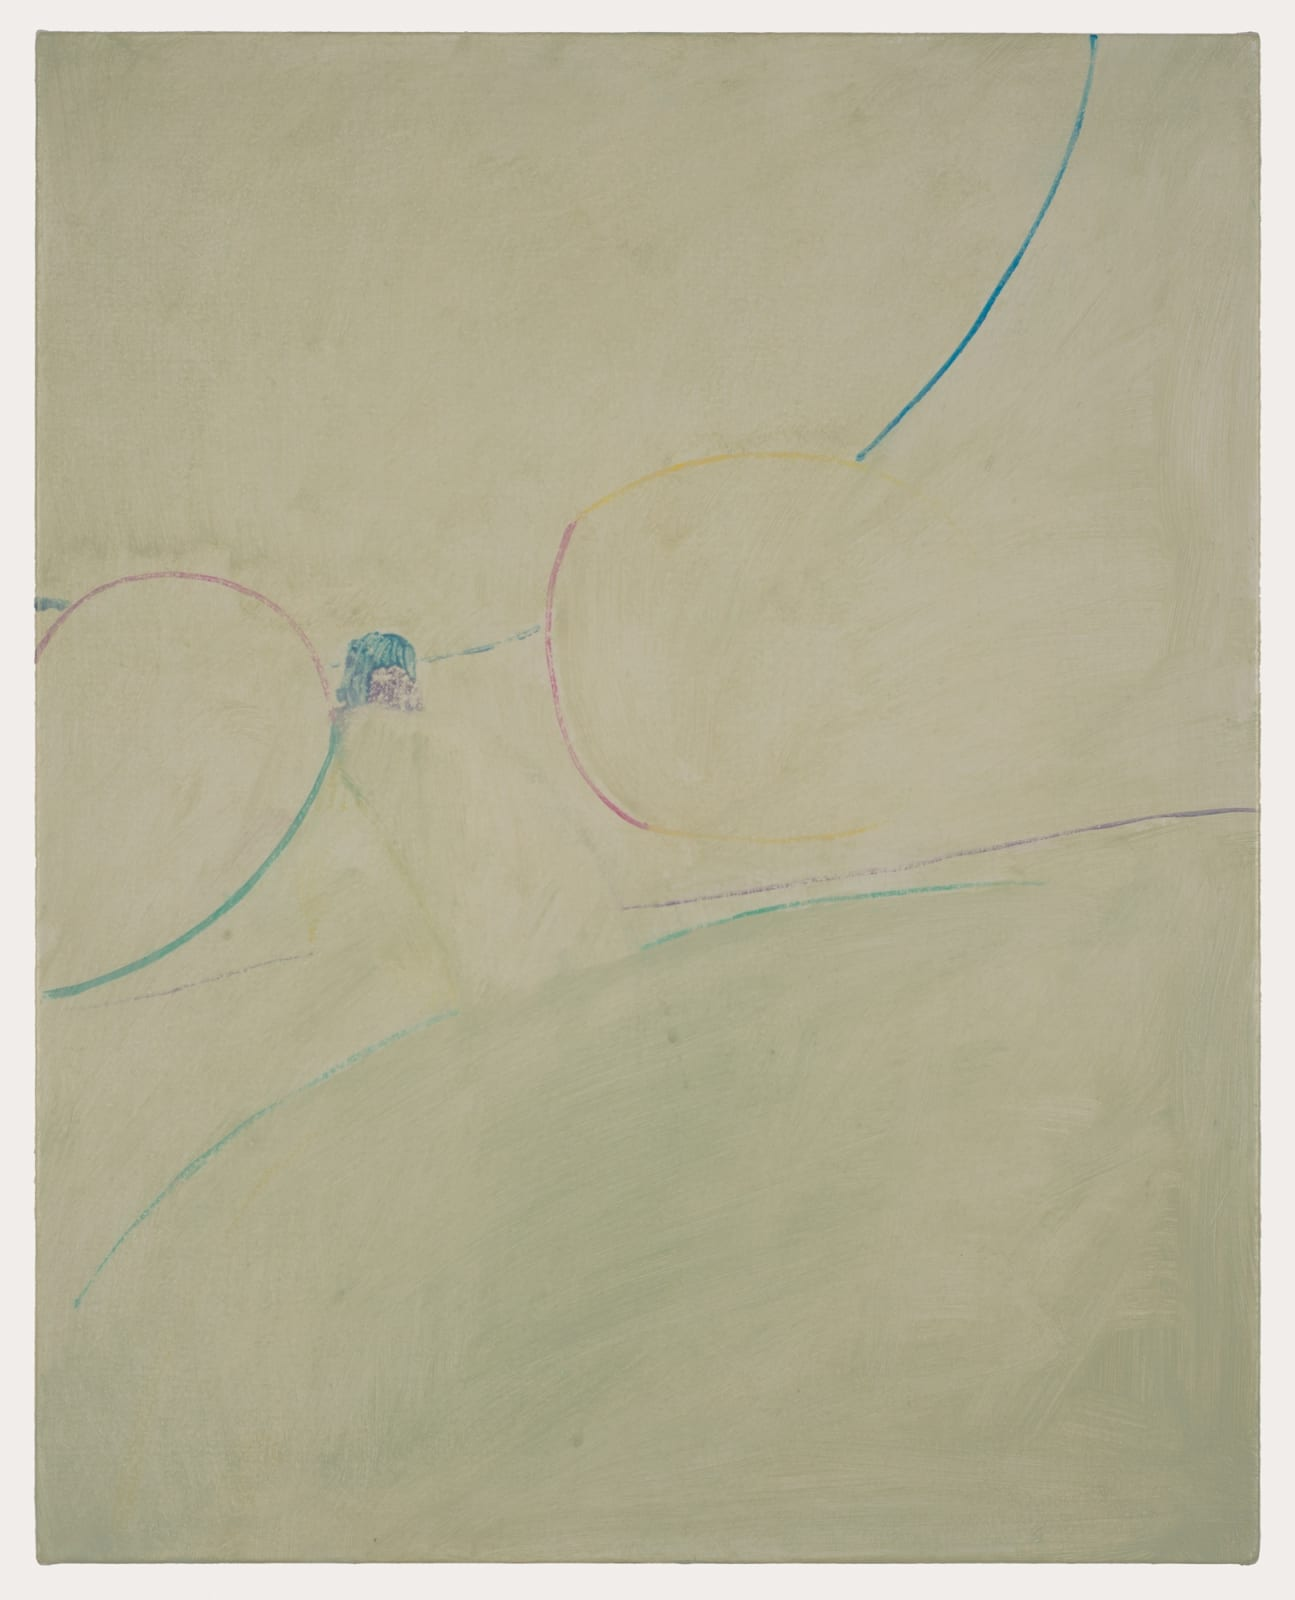 Phoebe Unwin Painters and Collection 2021 (Group Exhibition) Nakata Museum Japan 12 June - 3 October 2021 http://www.nakata-museum.jp